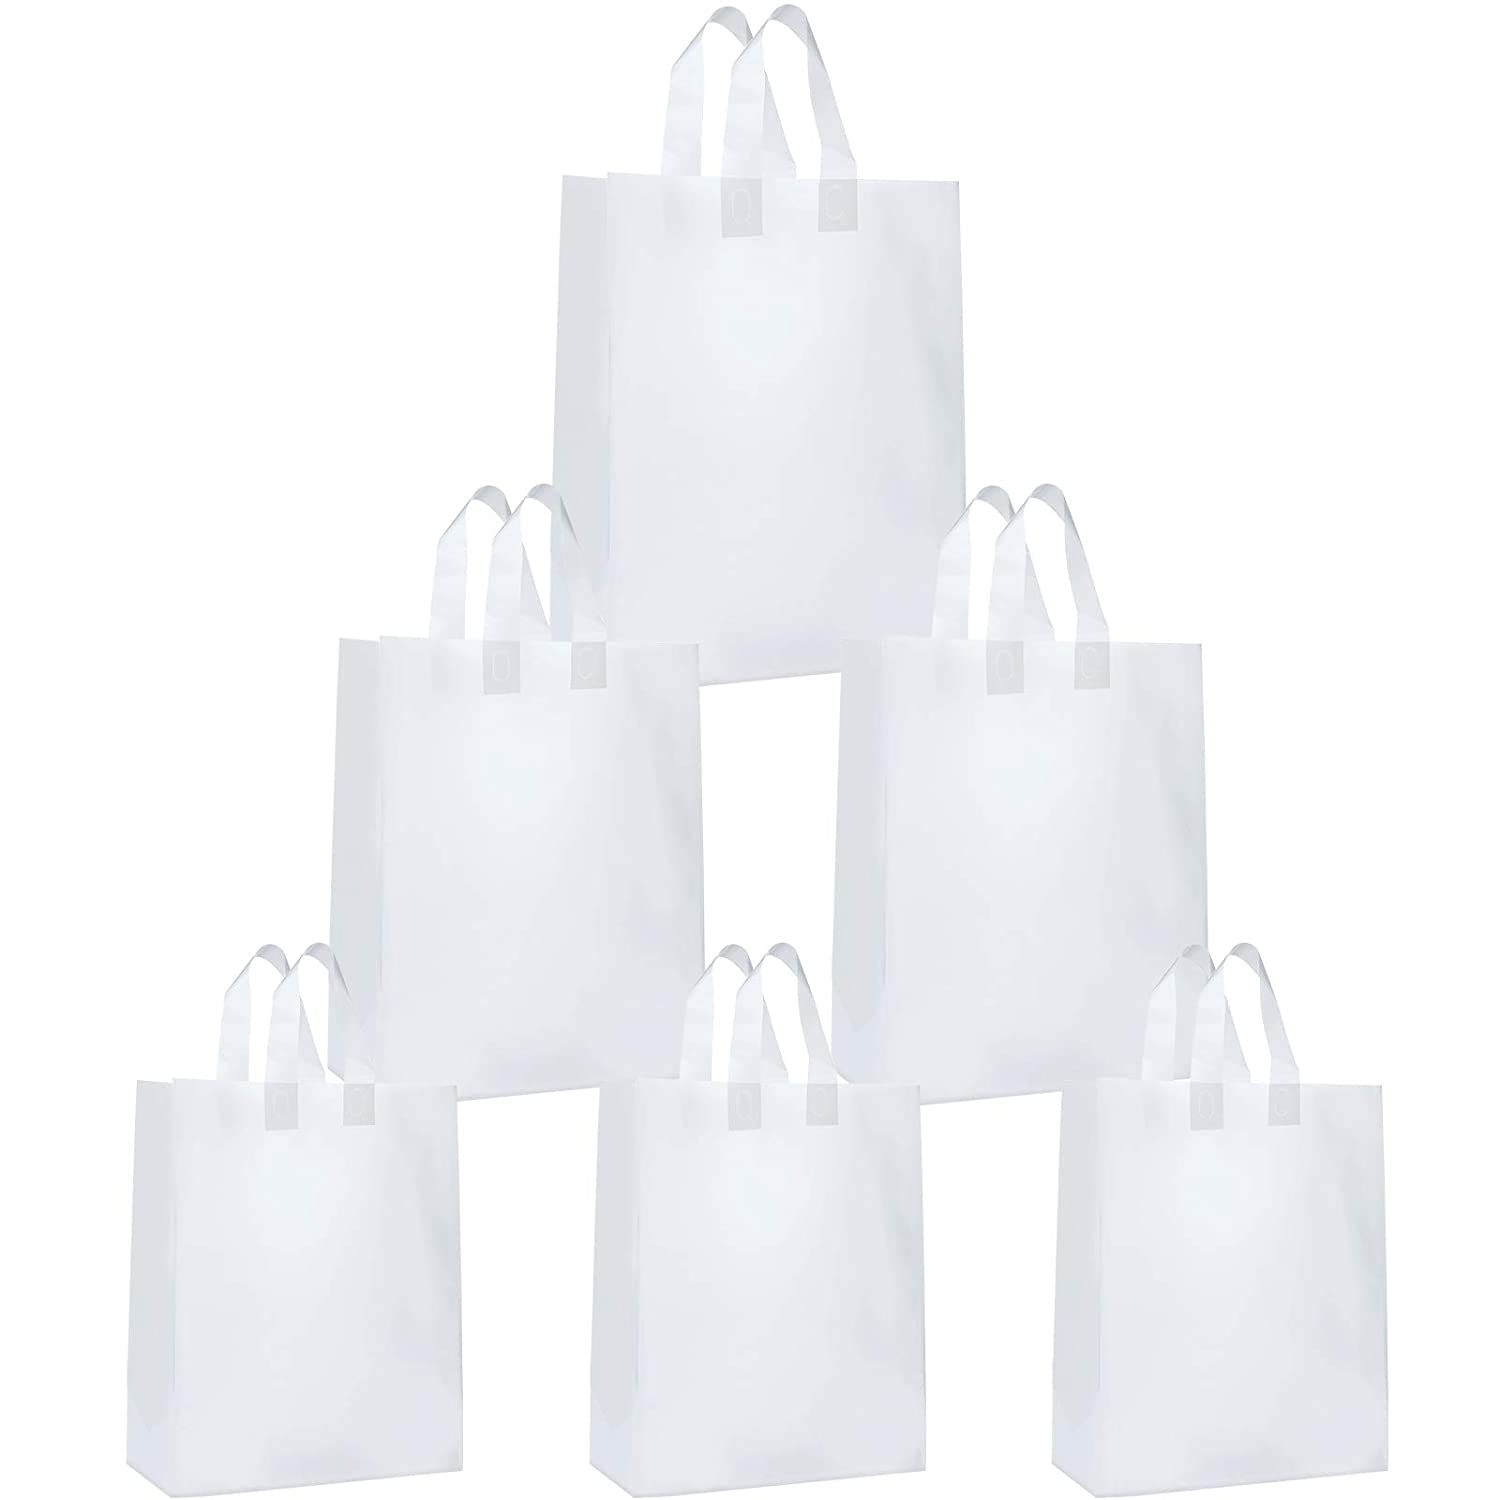 150 Pieces Frosted Clear Plastic Bags with Soft Strap Handles, 3 Different Sizes Take Out Bags Present Shopping Bags with Cardboard Bottom Thick, 5 x 3 x 7, 8 x 4 x 10, 10 x 5 x 13 Inch